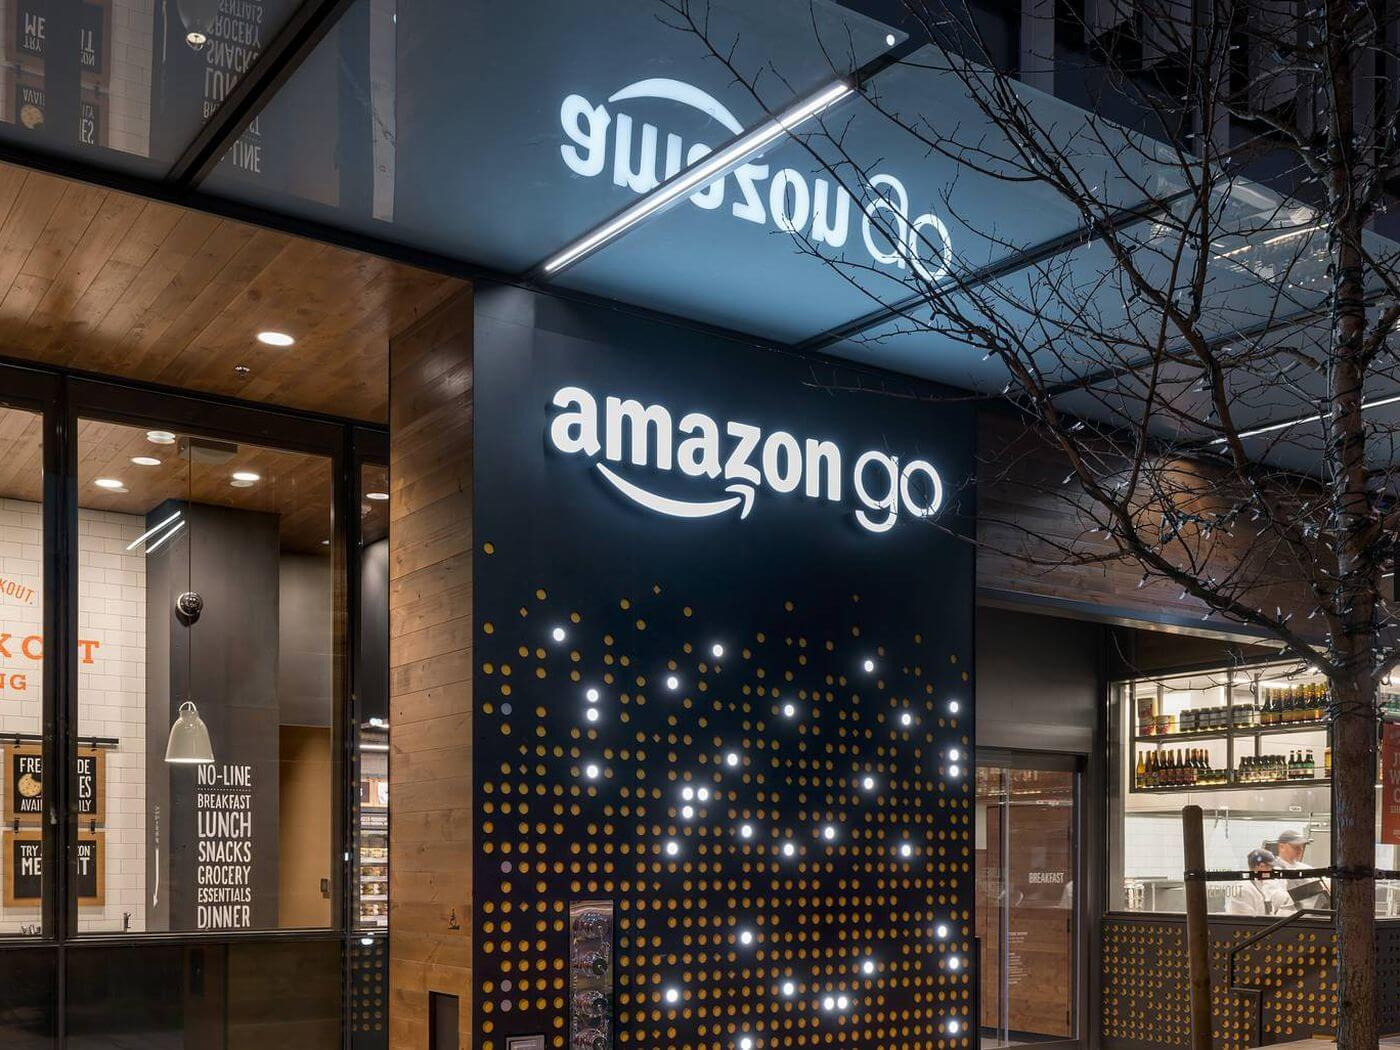 Amazon considering opening 3,000 cashierless Go stores, report says